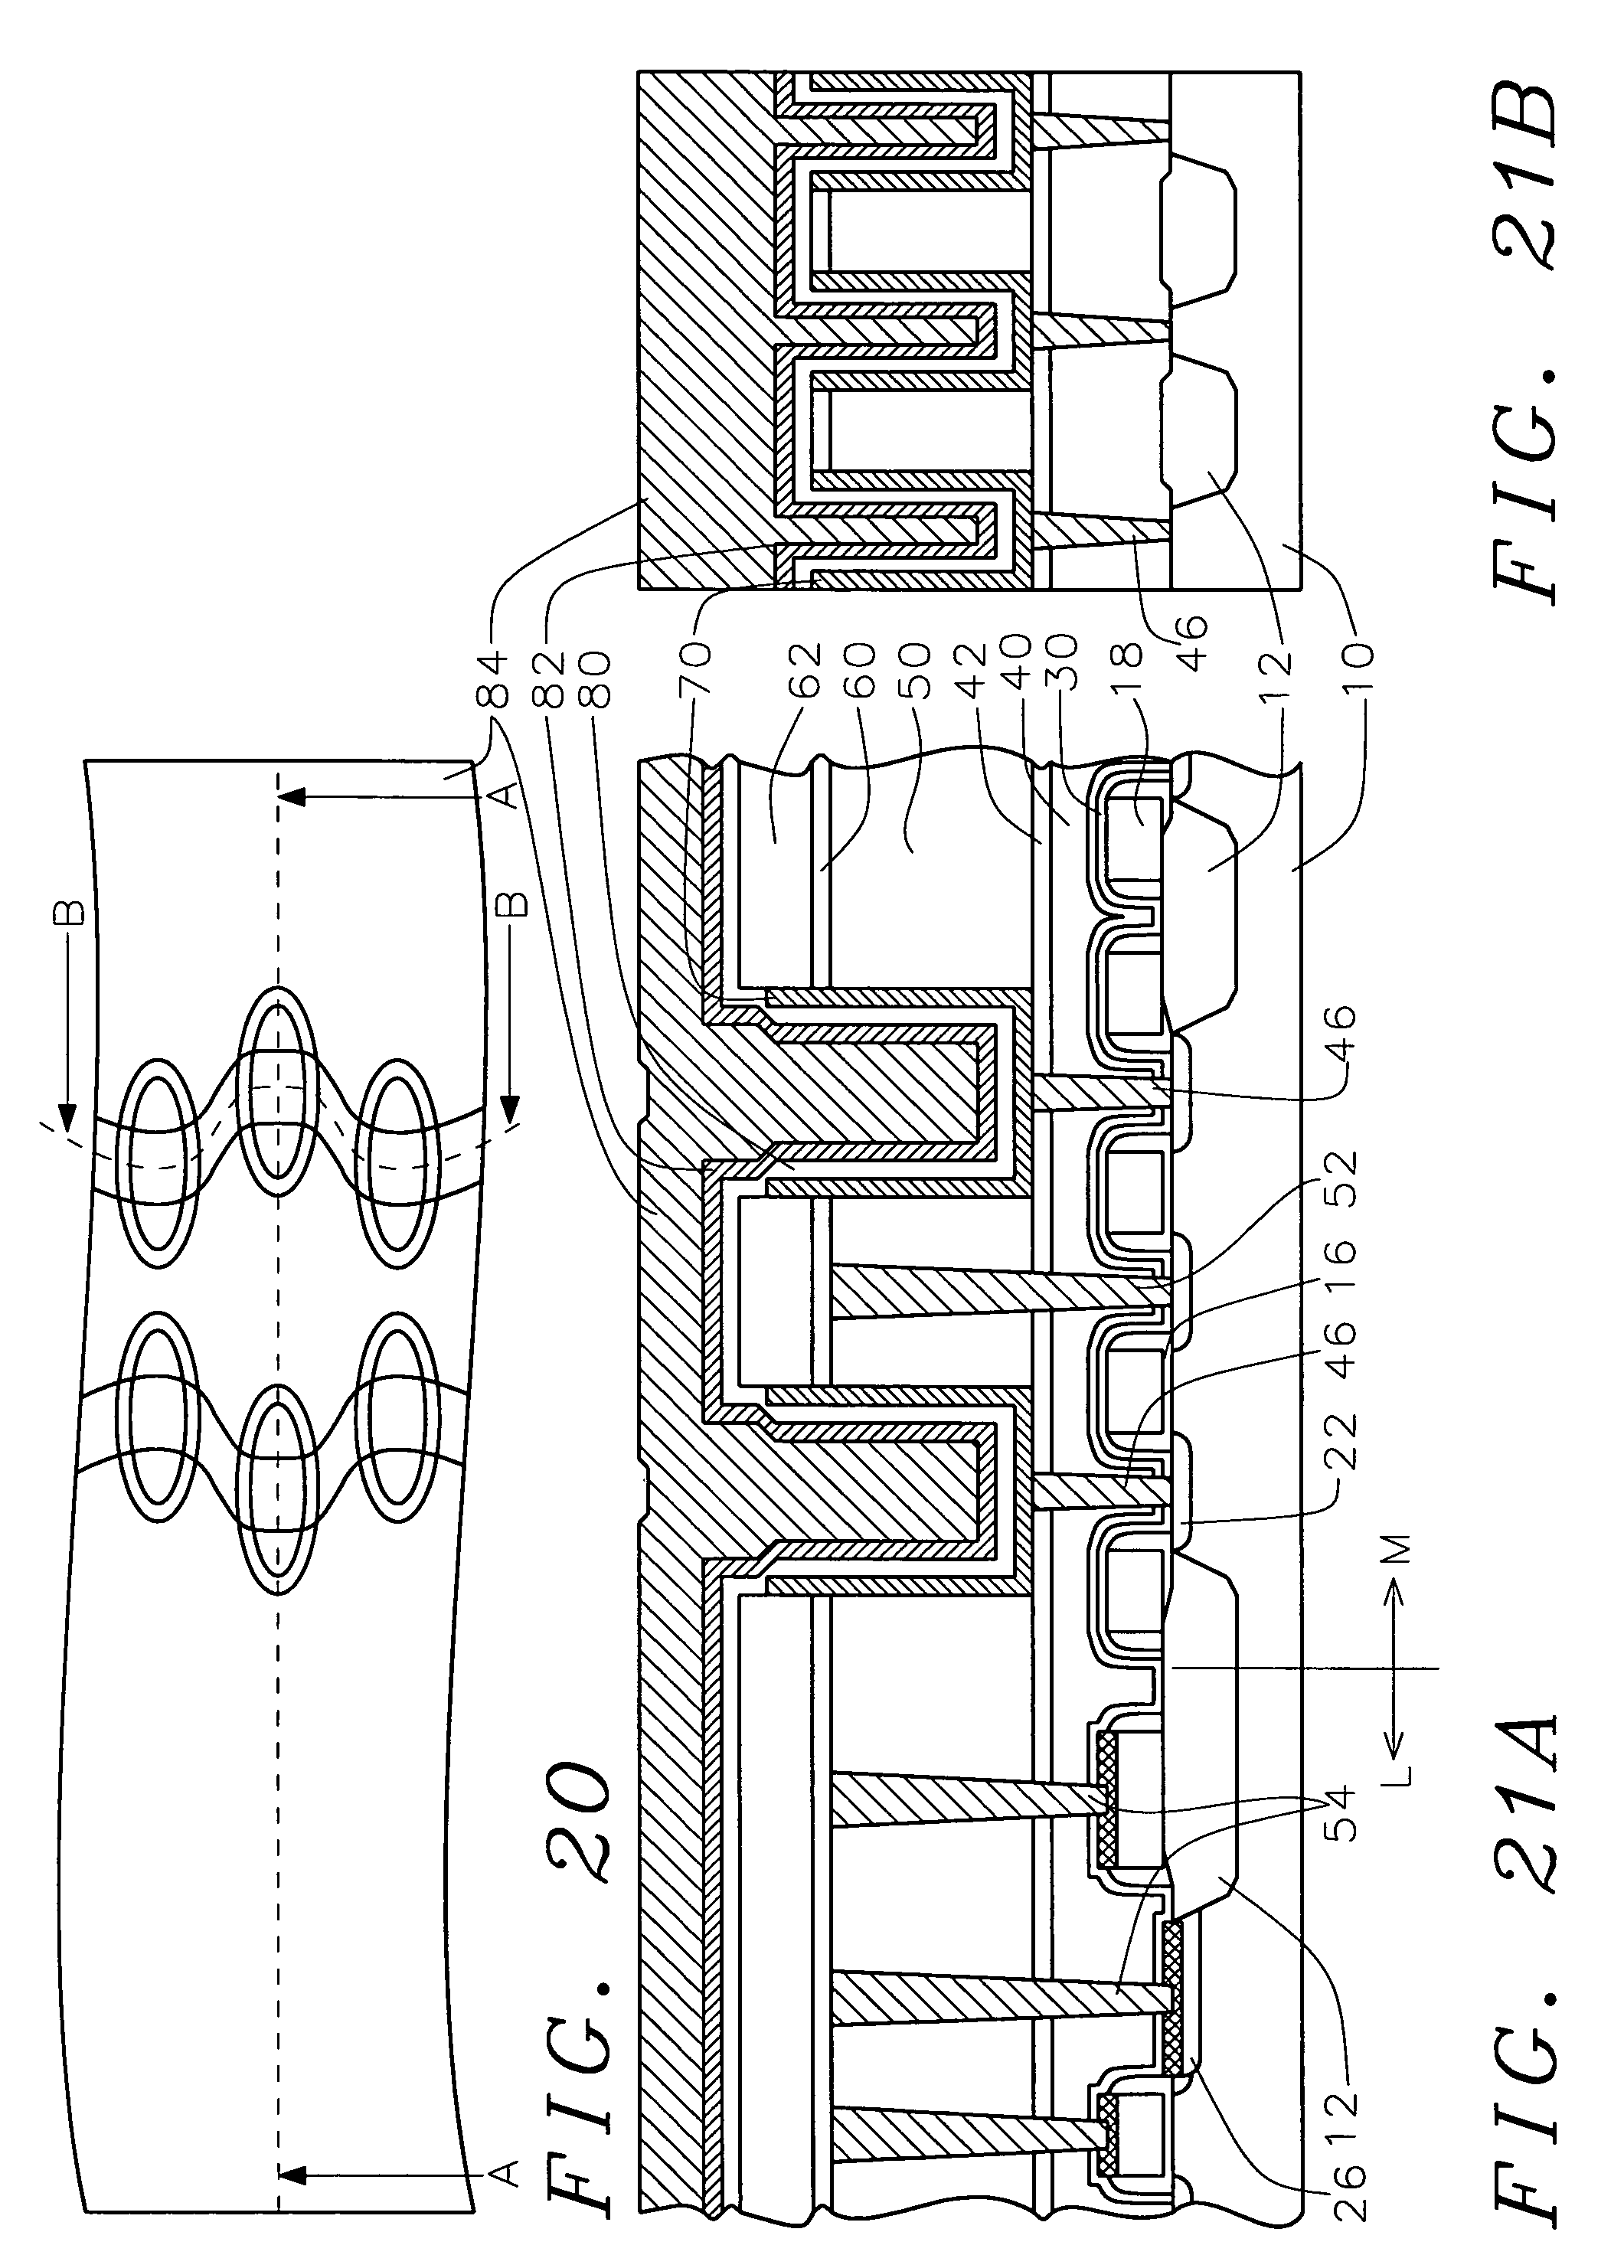 Patent Us7115935 Embedded Dram For Metal Insulator Metal